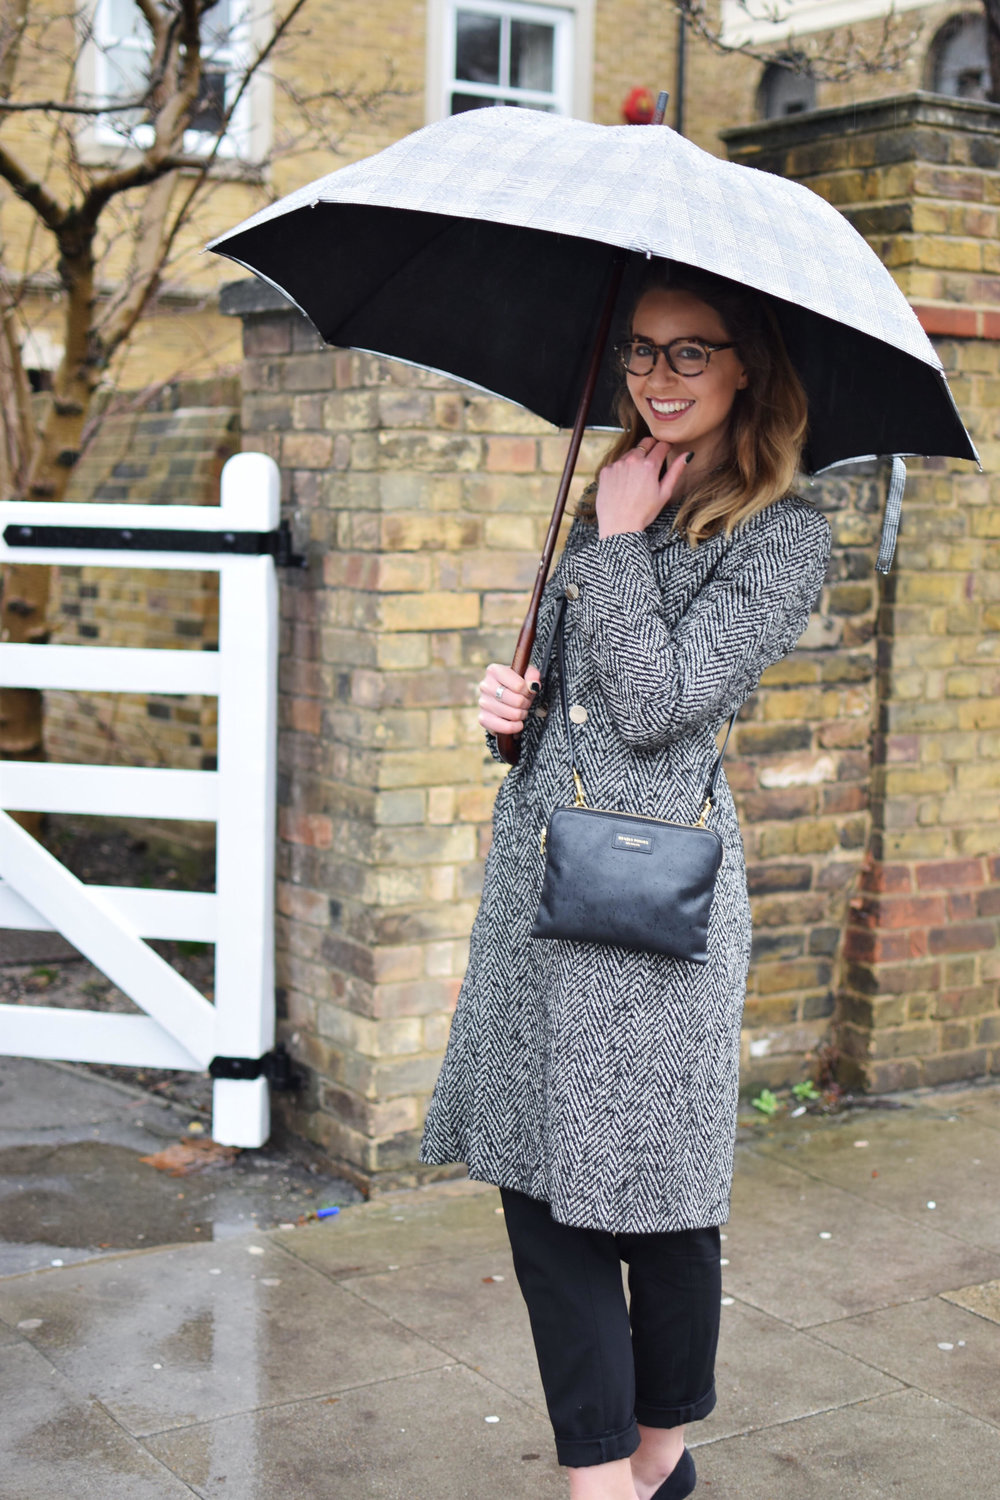 Looking sophisticated in rain or shine! Ted Baker jacket, Hobbs trousers, Deadly Ponies handbag, and London Undercover umbrella (all linked below).